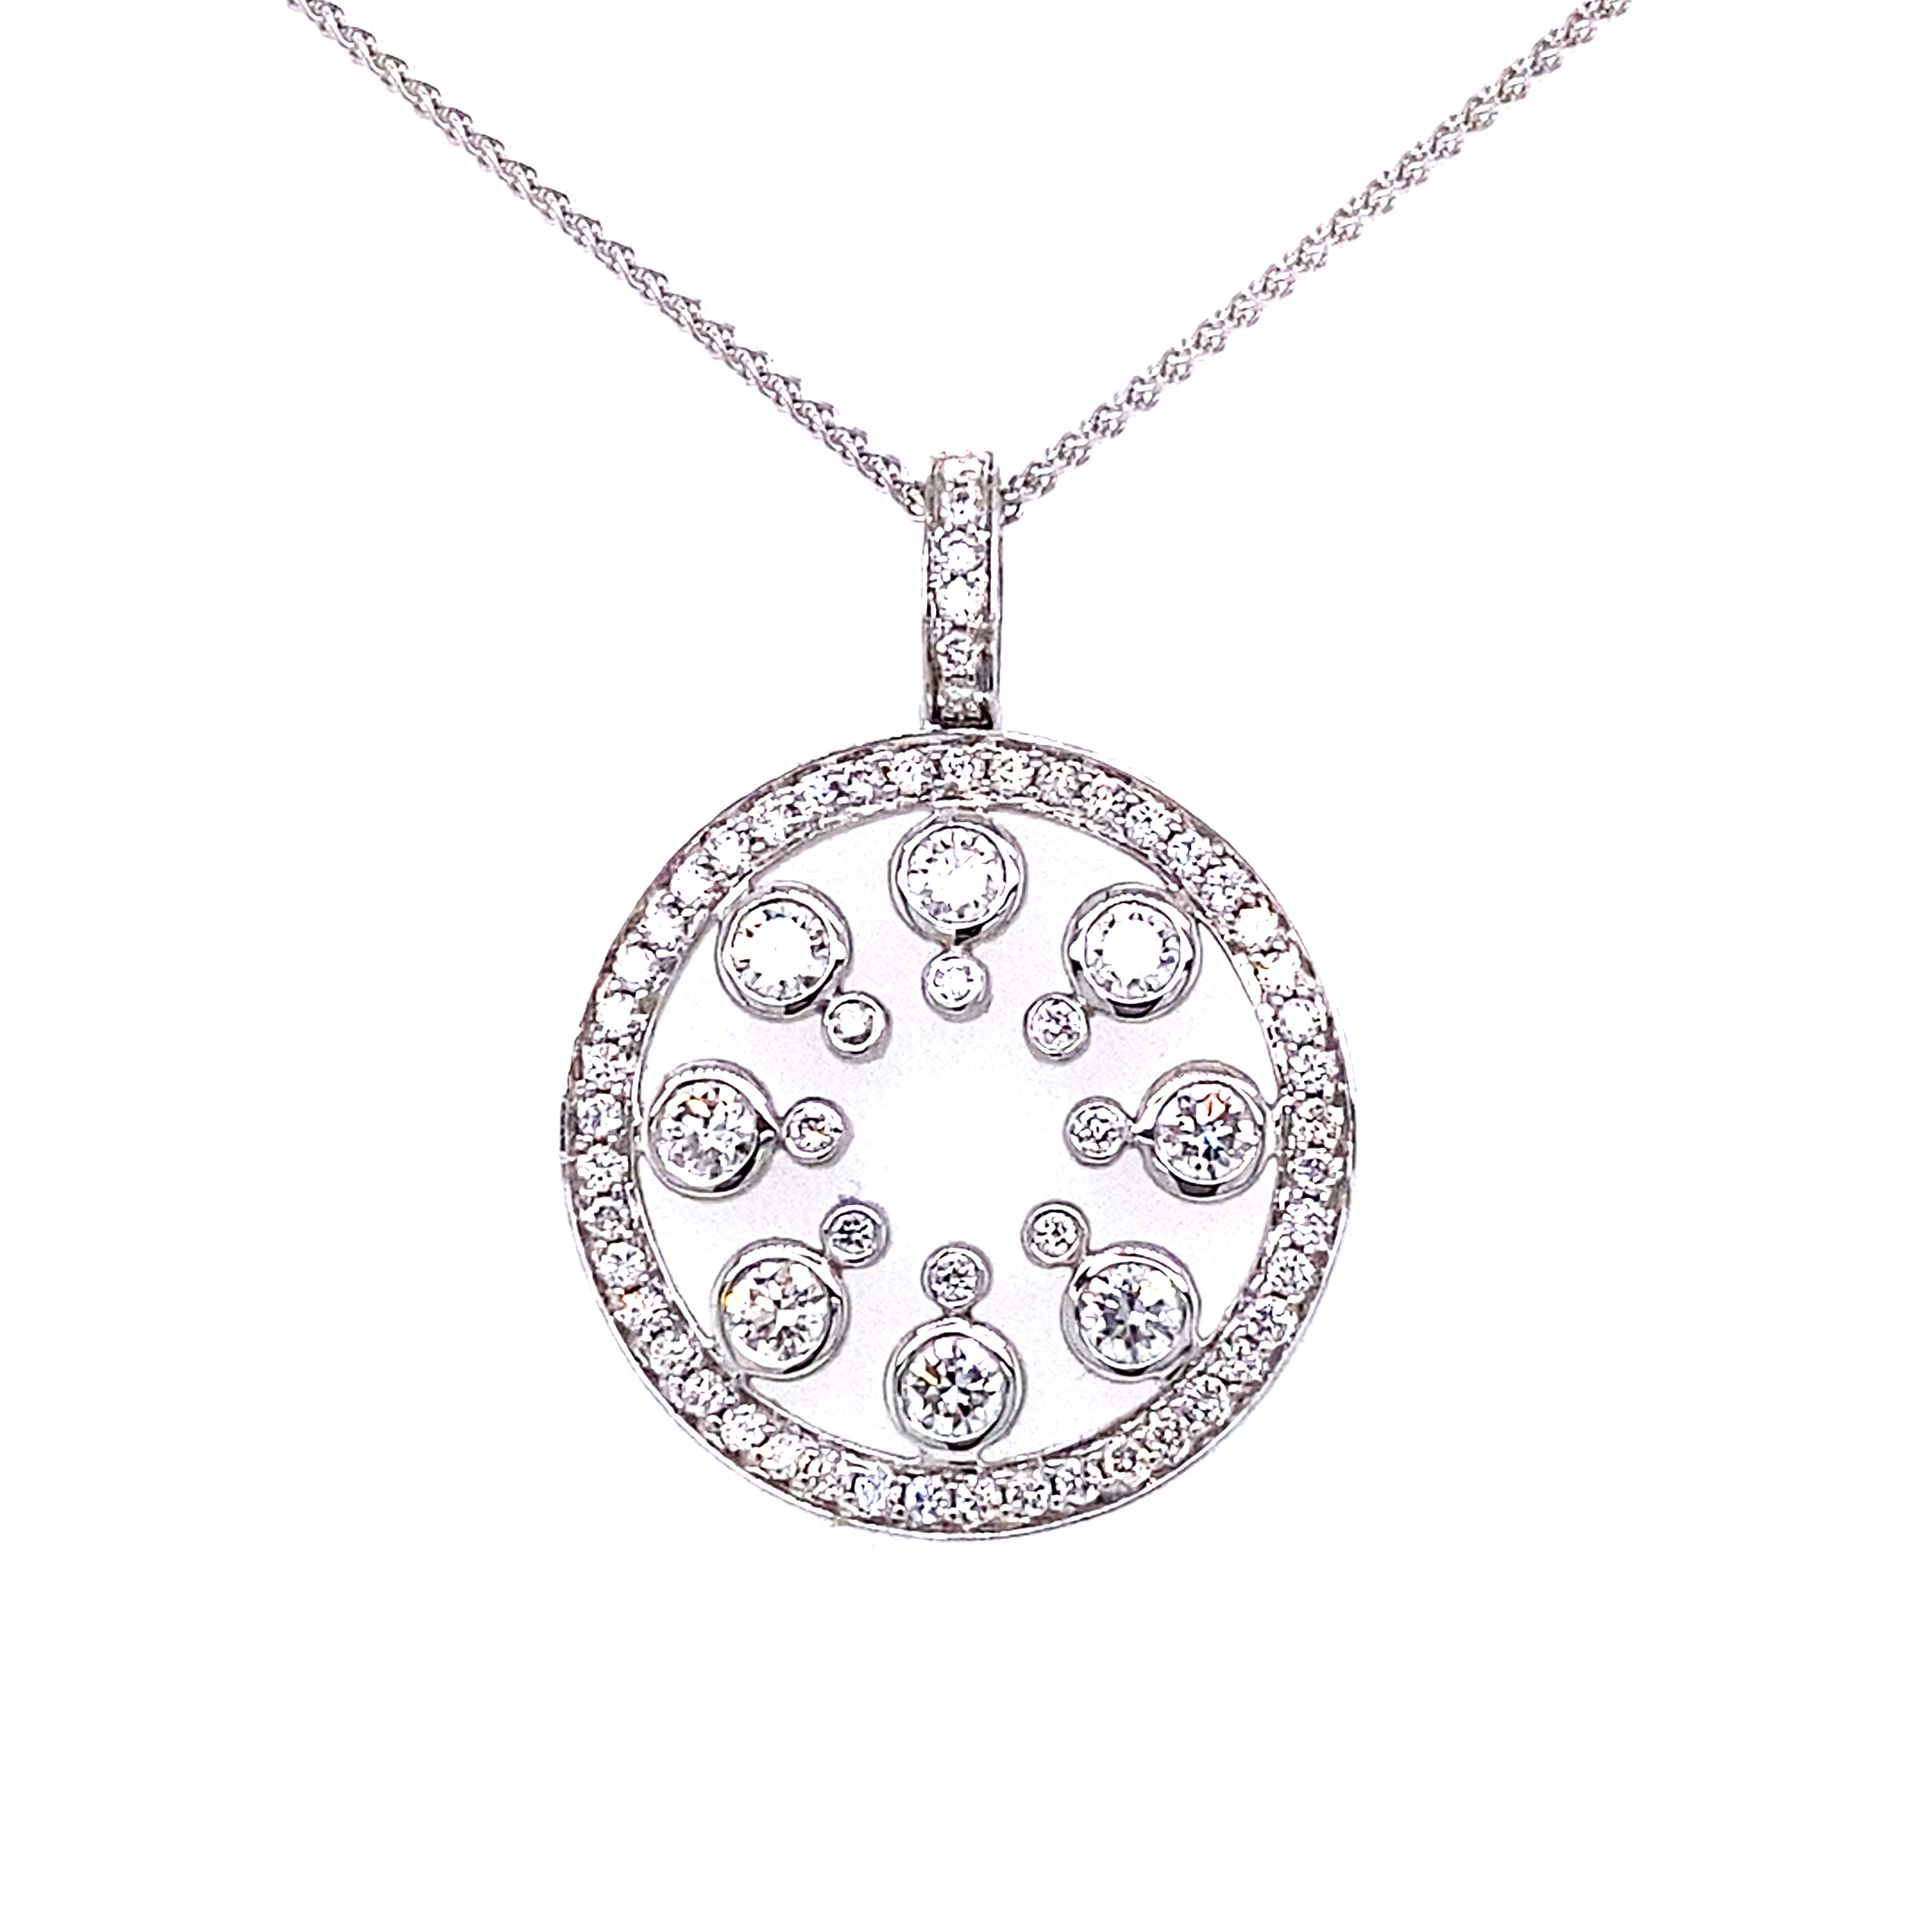 18 Carat White Gold Diamond Circle Design Pendant  - 1.00 Carats